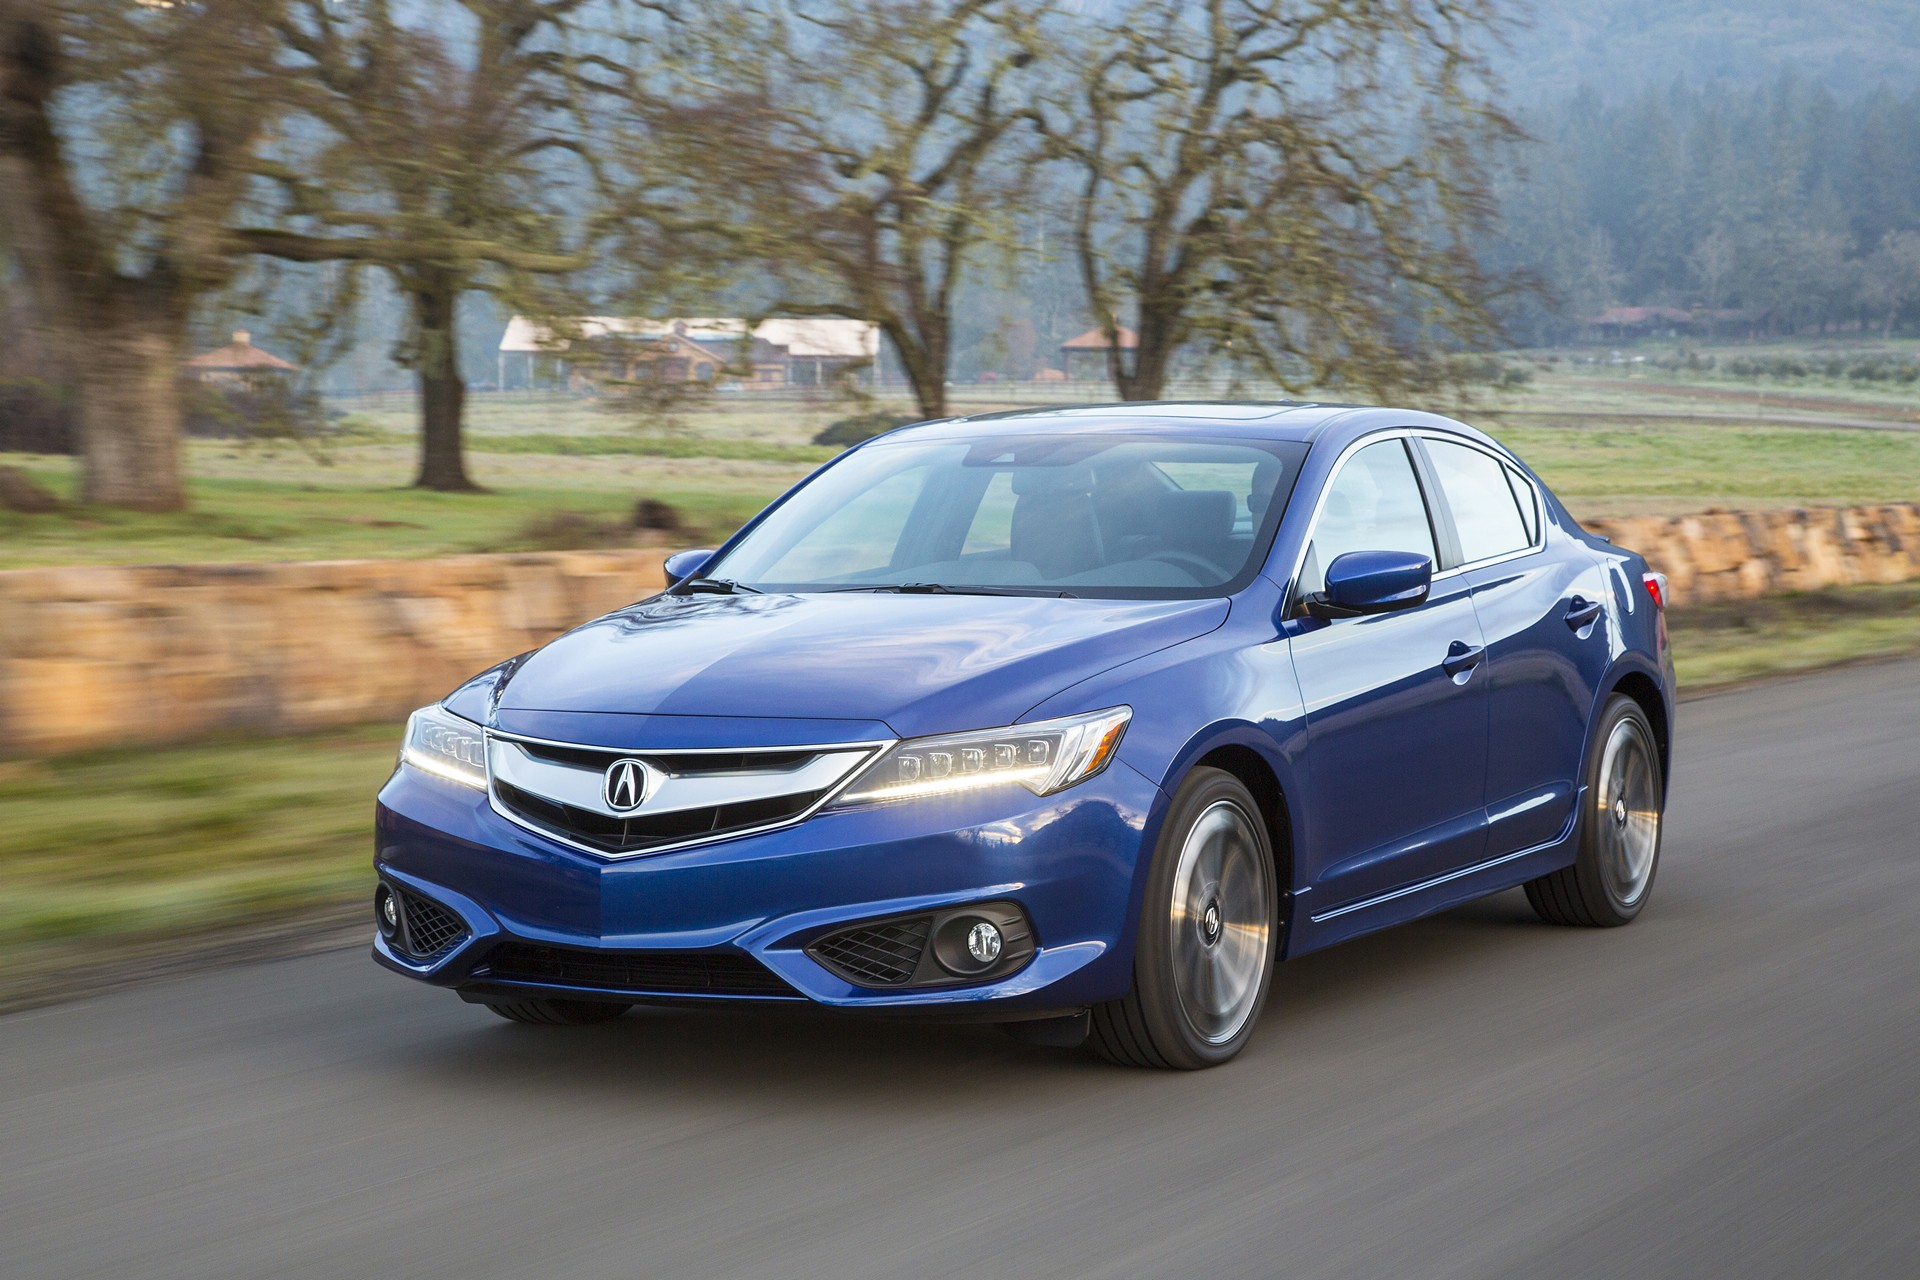 2016 Acura Ilx Review Carrrs Auto Portal